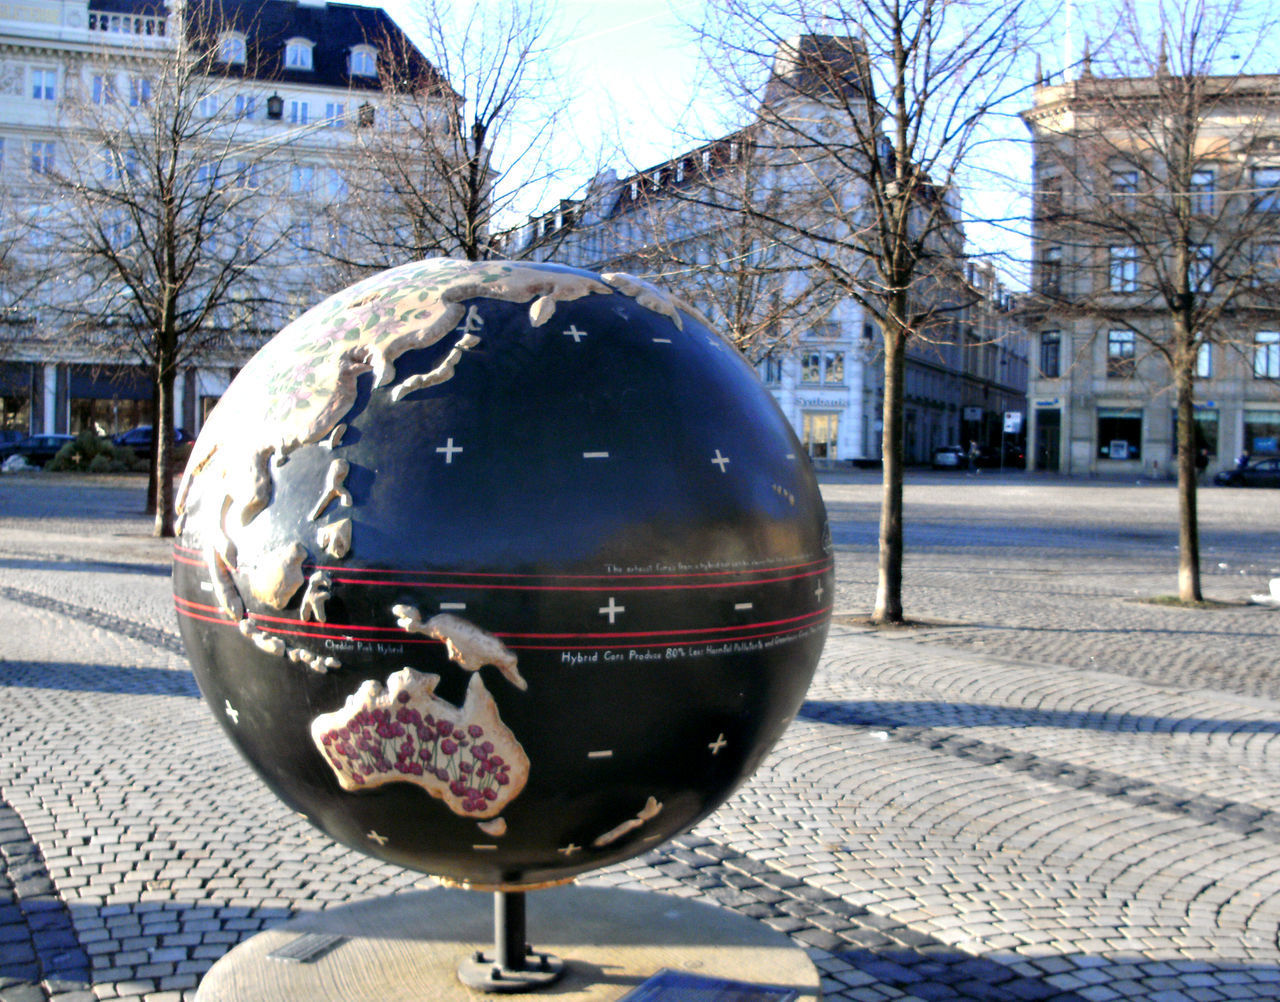 building exterior, architecture, city, built structure, day, bare tree, street, tree, nature, building, outdoors, no people, winter, close-up, sphere, mode of transportation, transportation, cold temperature, snow, sunlight